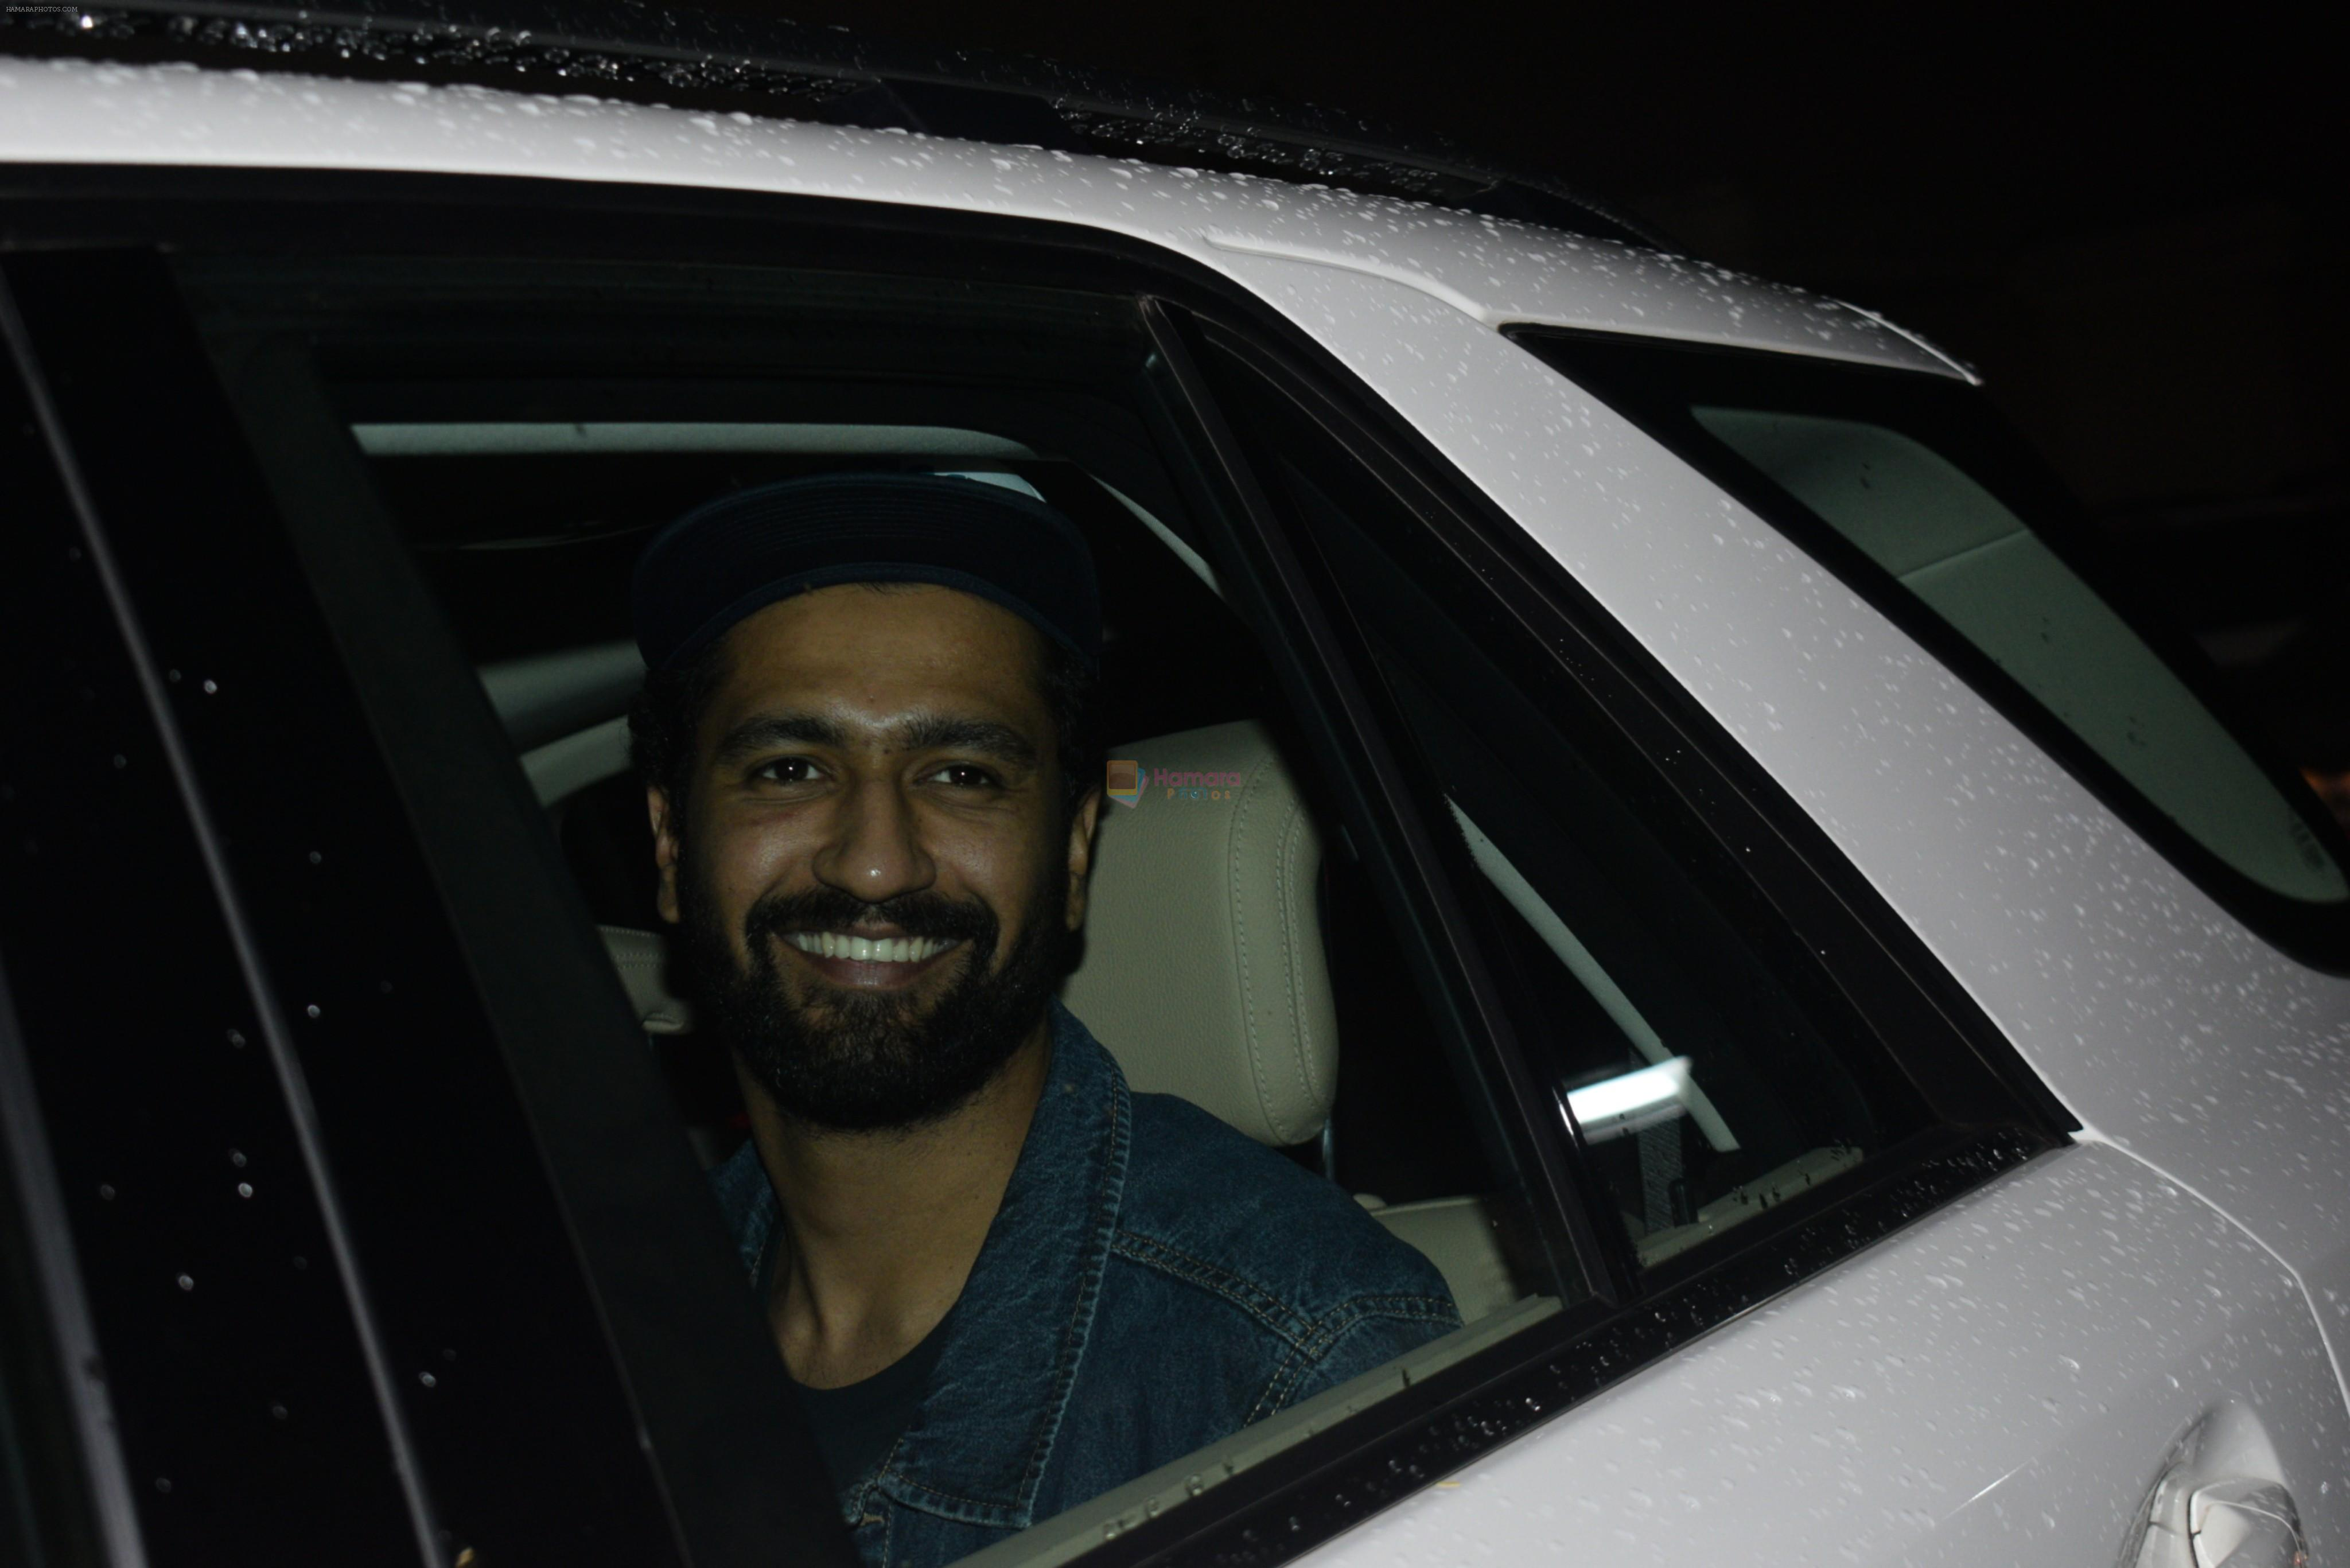 Vicky Kaushal at the Screening of film Chhichore in yashraj studio, andheri on 4th Sept 2019